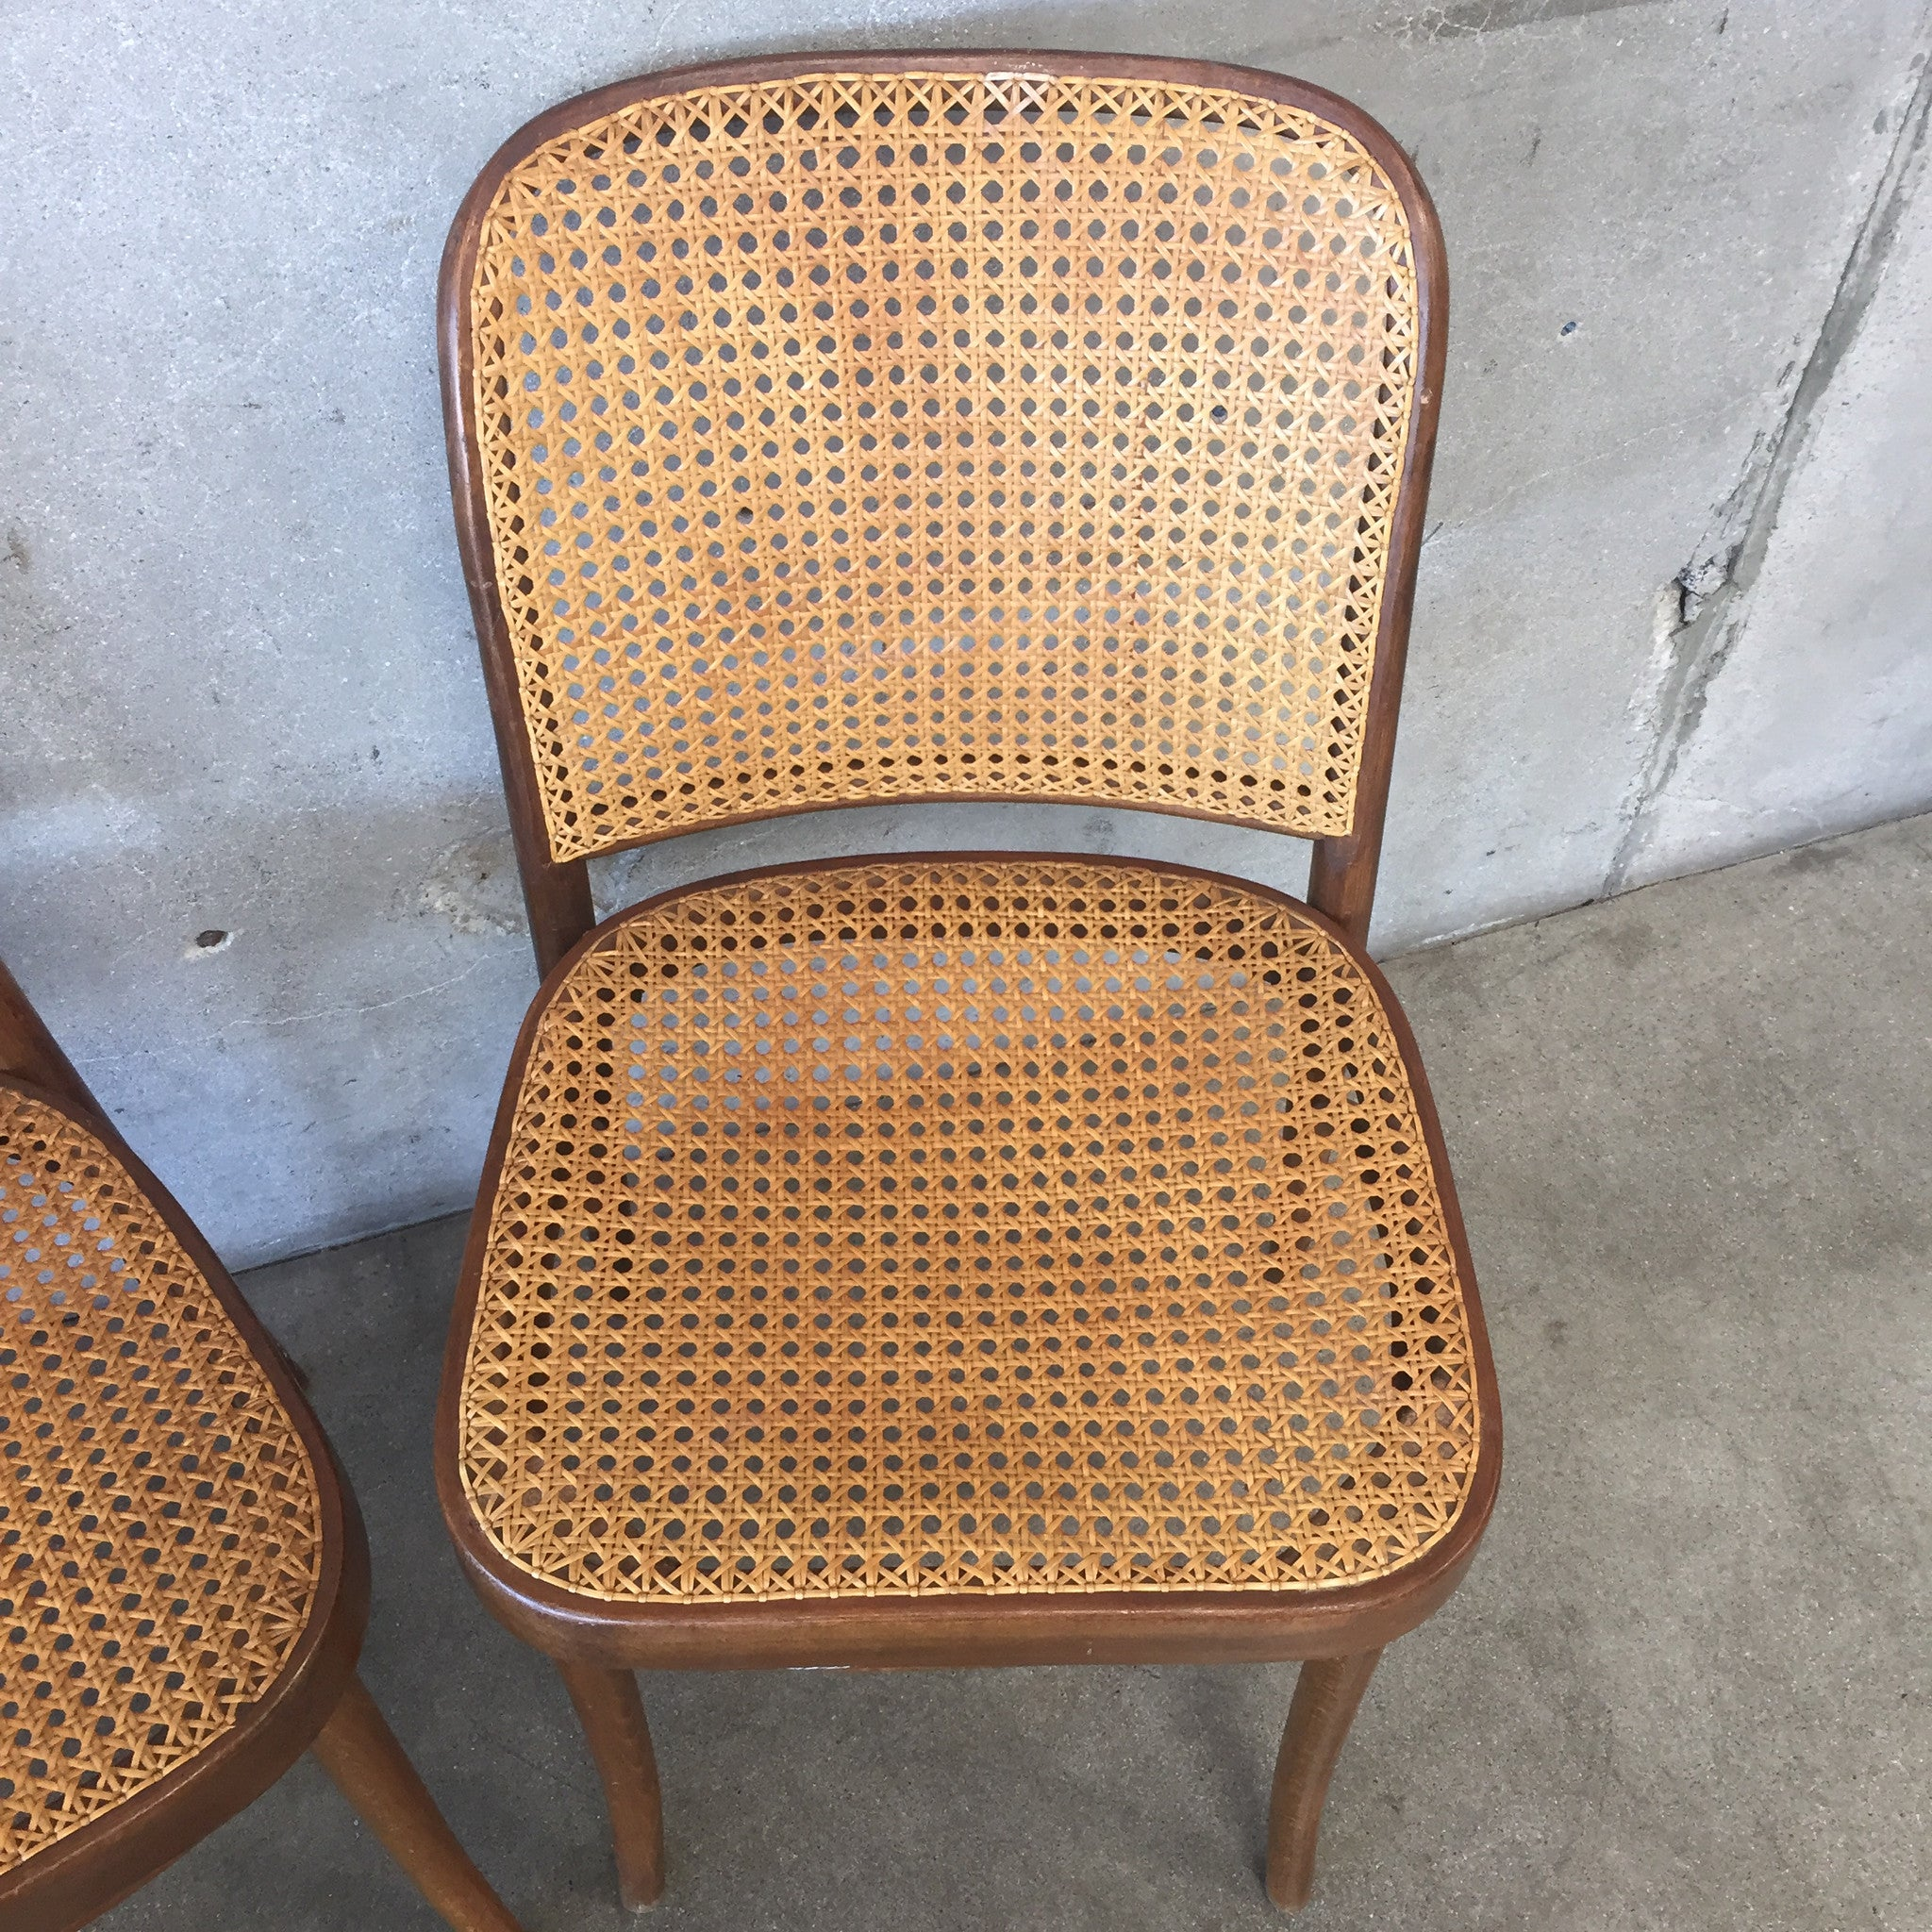 Pair of Vintage Thonet Style Cane Dining Chairs UrbanAmericana